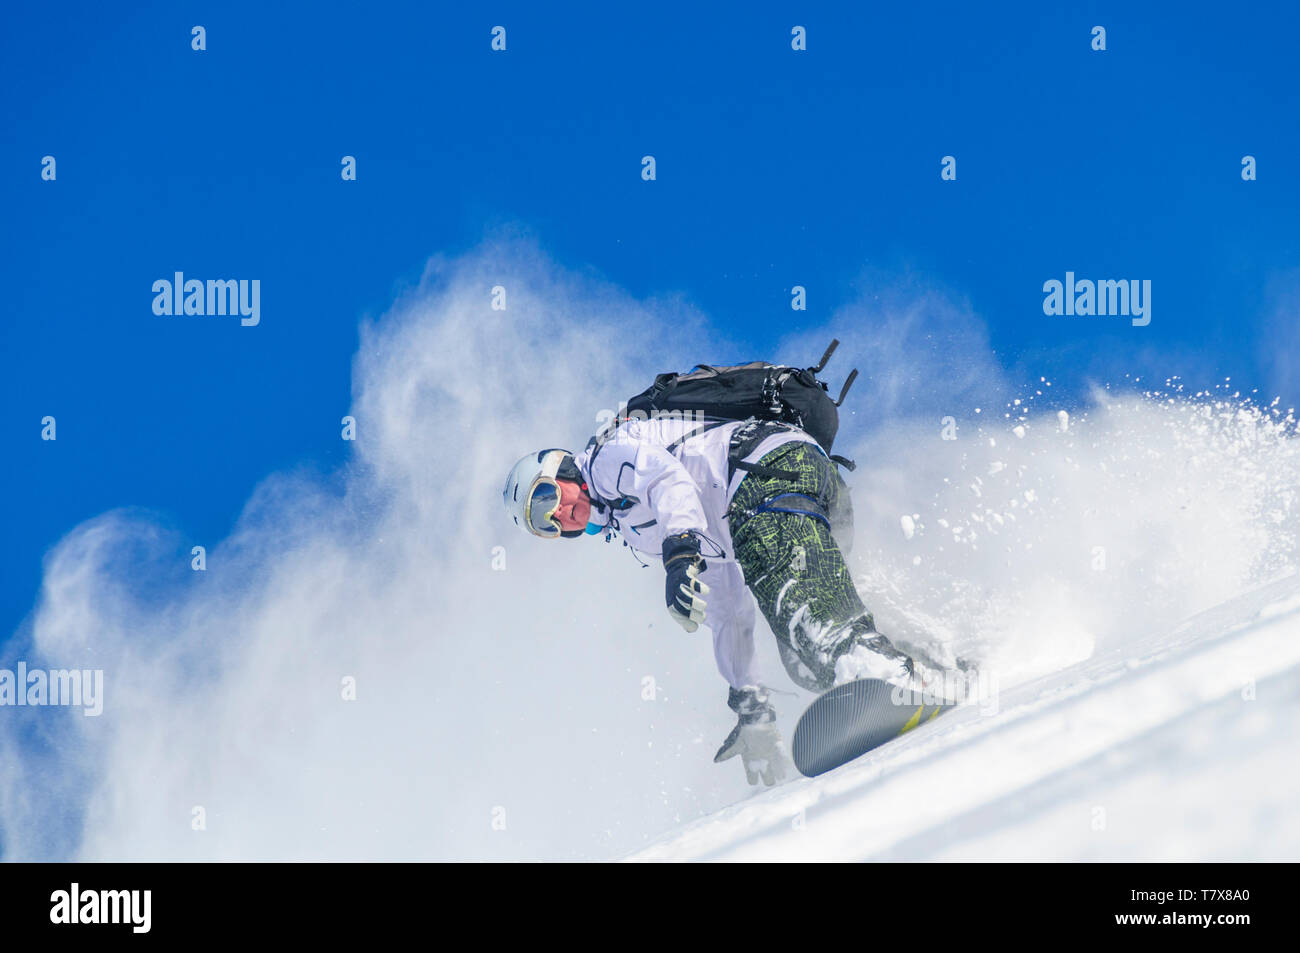 Snowboarder during a downhill in backcountry - Stock Image